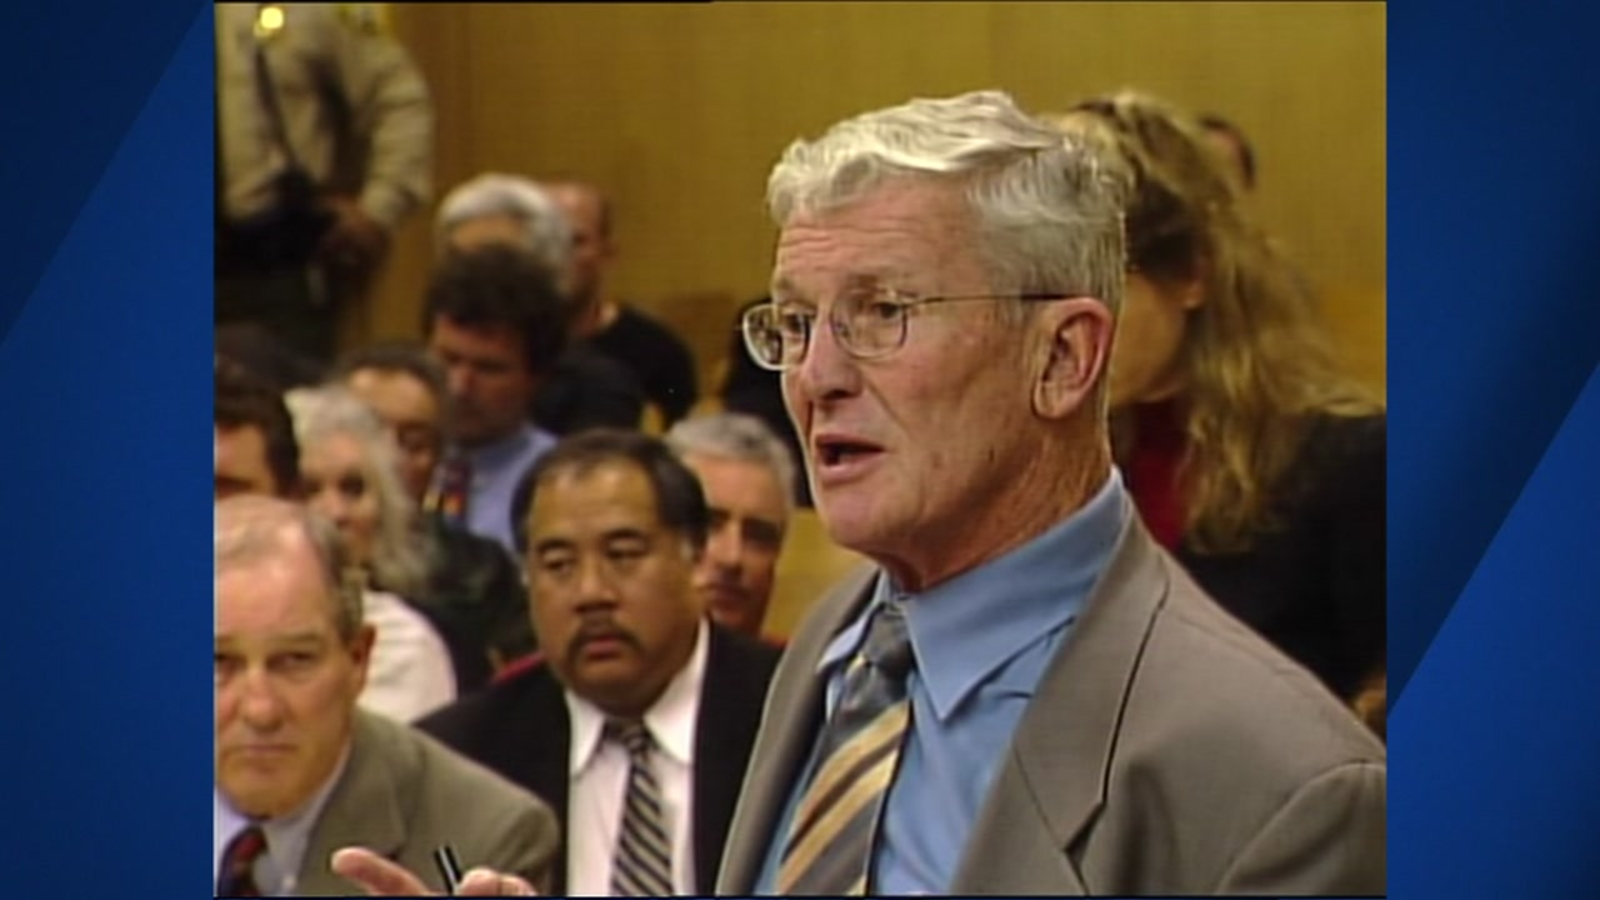 Former San Francisco District Attorney Terence Hallinan has reportedly died at 83